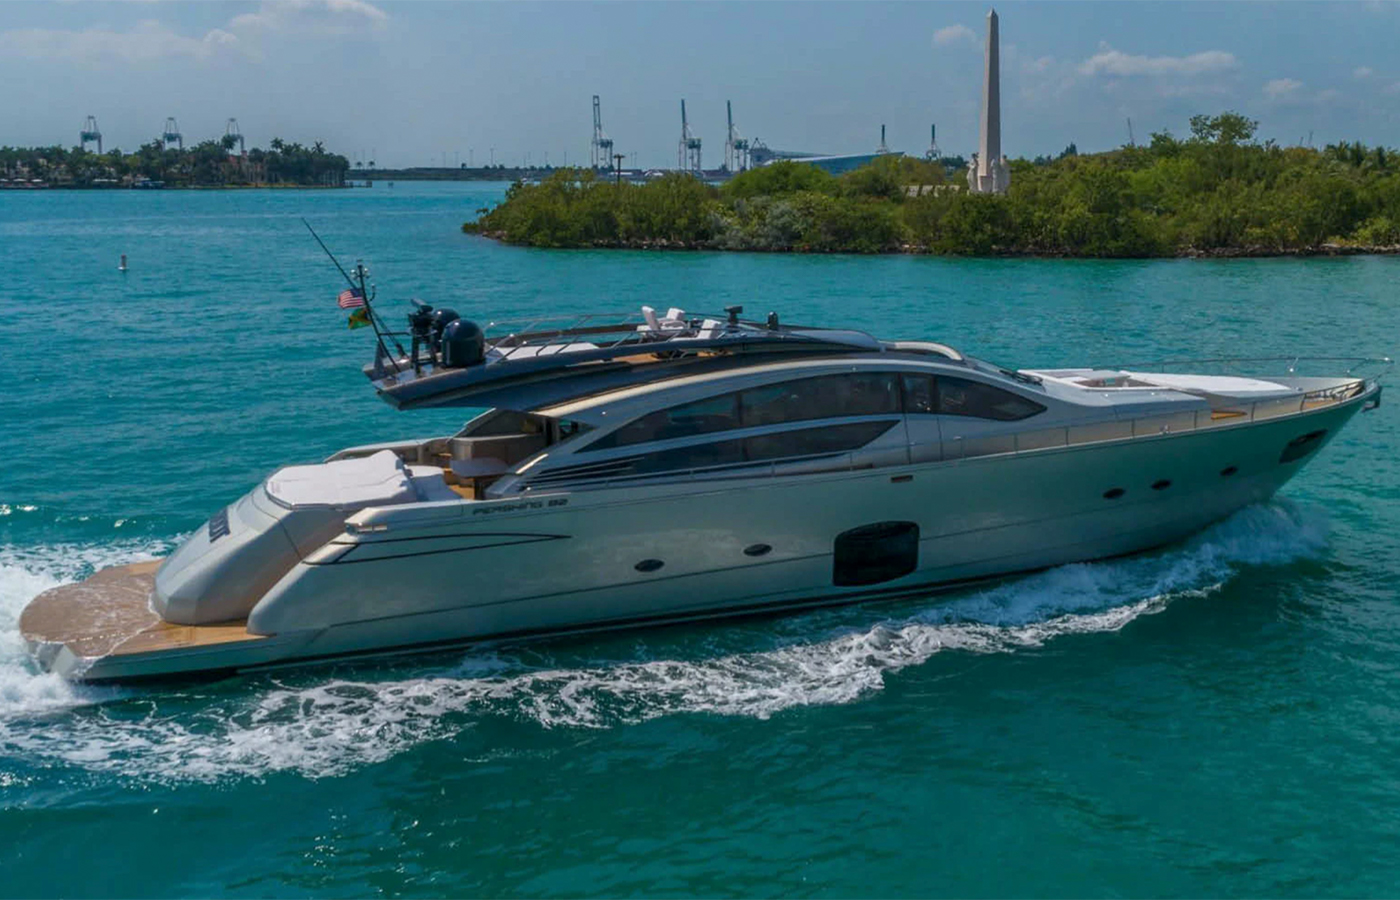 82 Pershing Motor Yacht 2015 Sold By Riccardo Solci